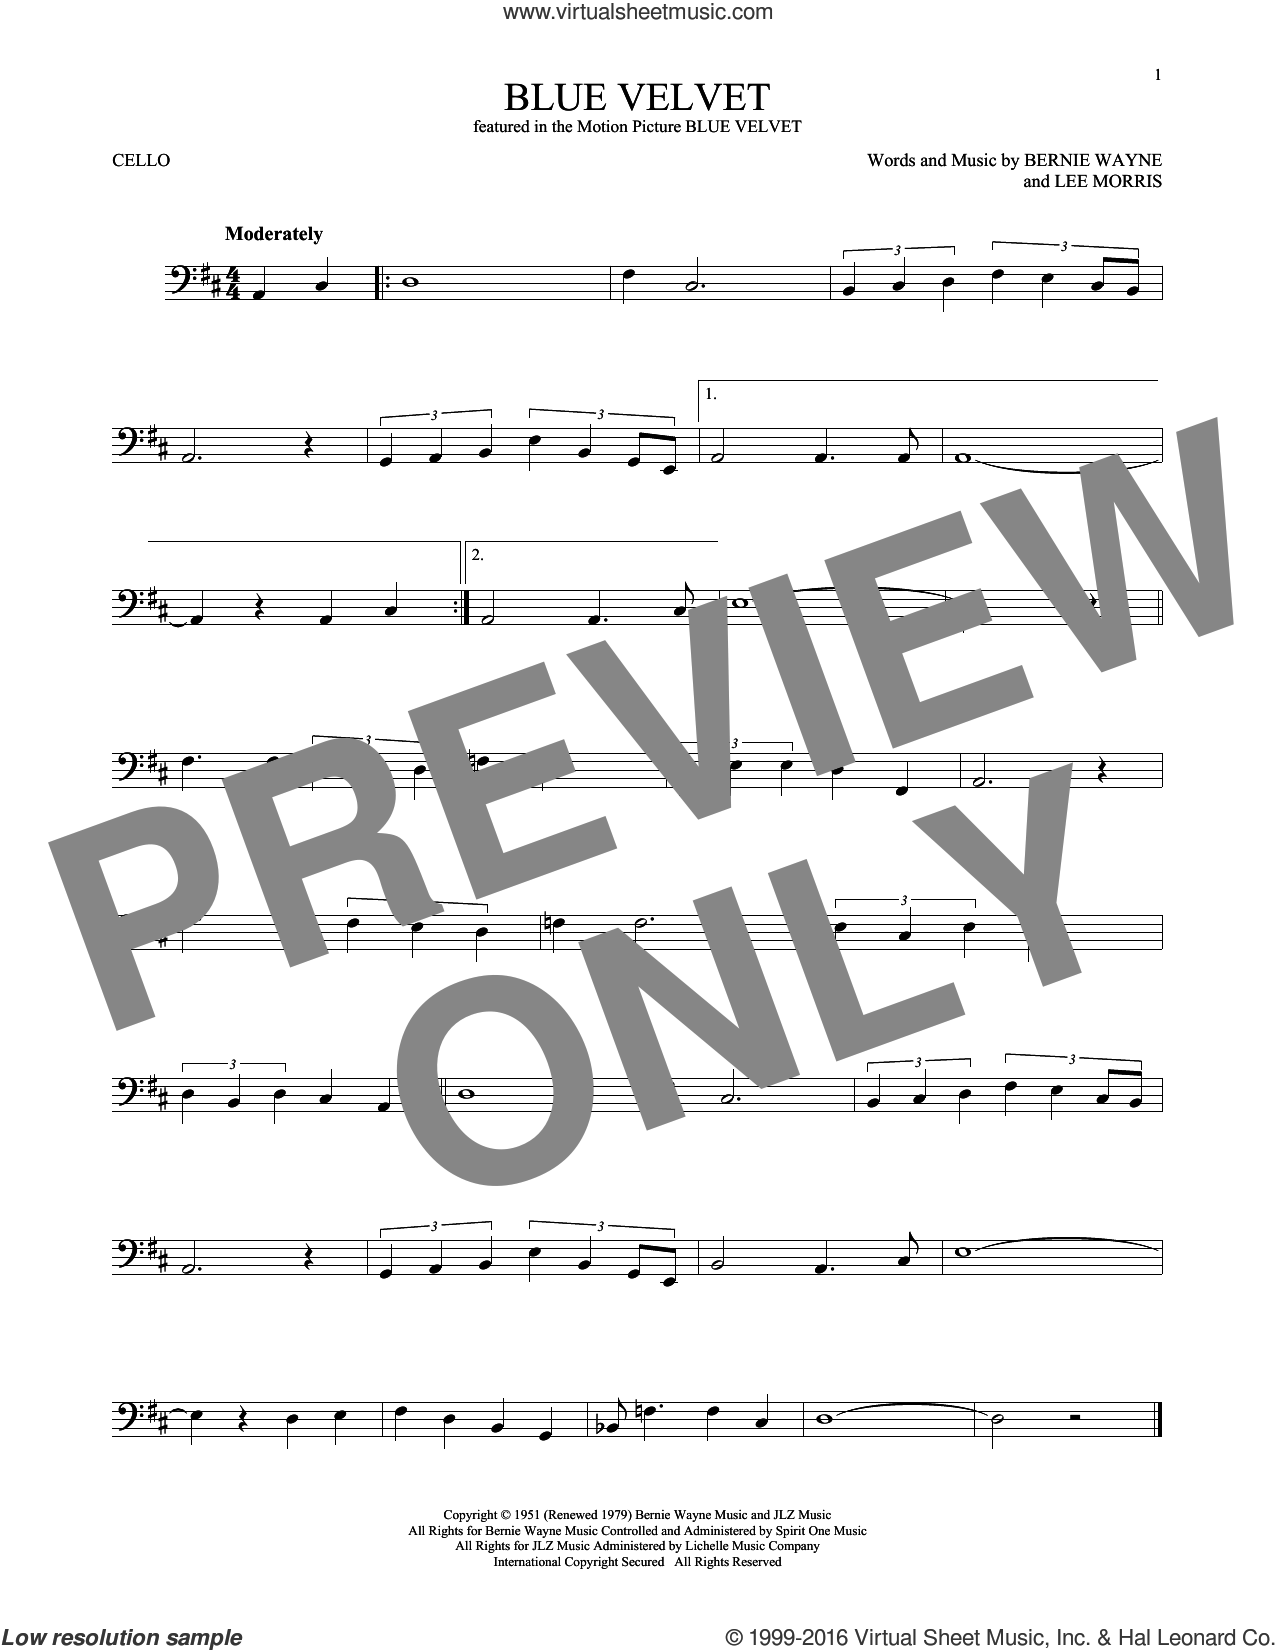 Blue Velvet sheet music for cello solo by Bobby Vinton, Statues, Bernie Wayne and Lee Morris, intermediate skill level